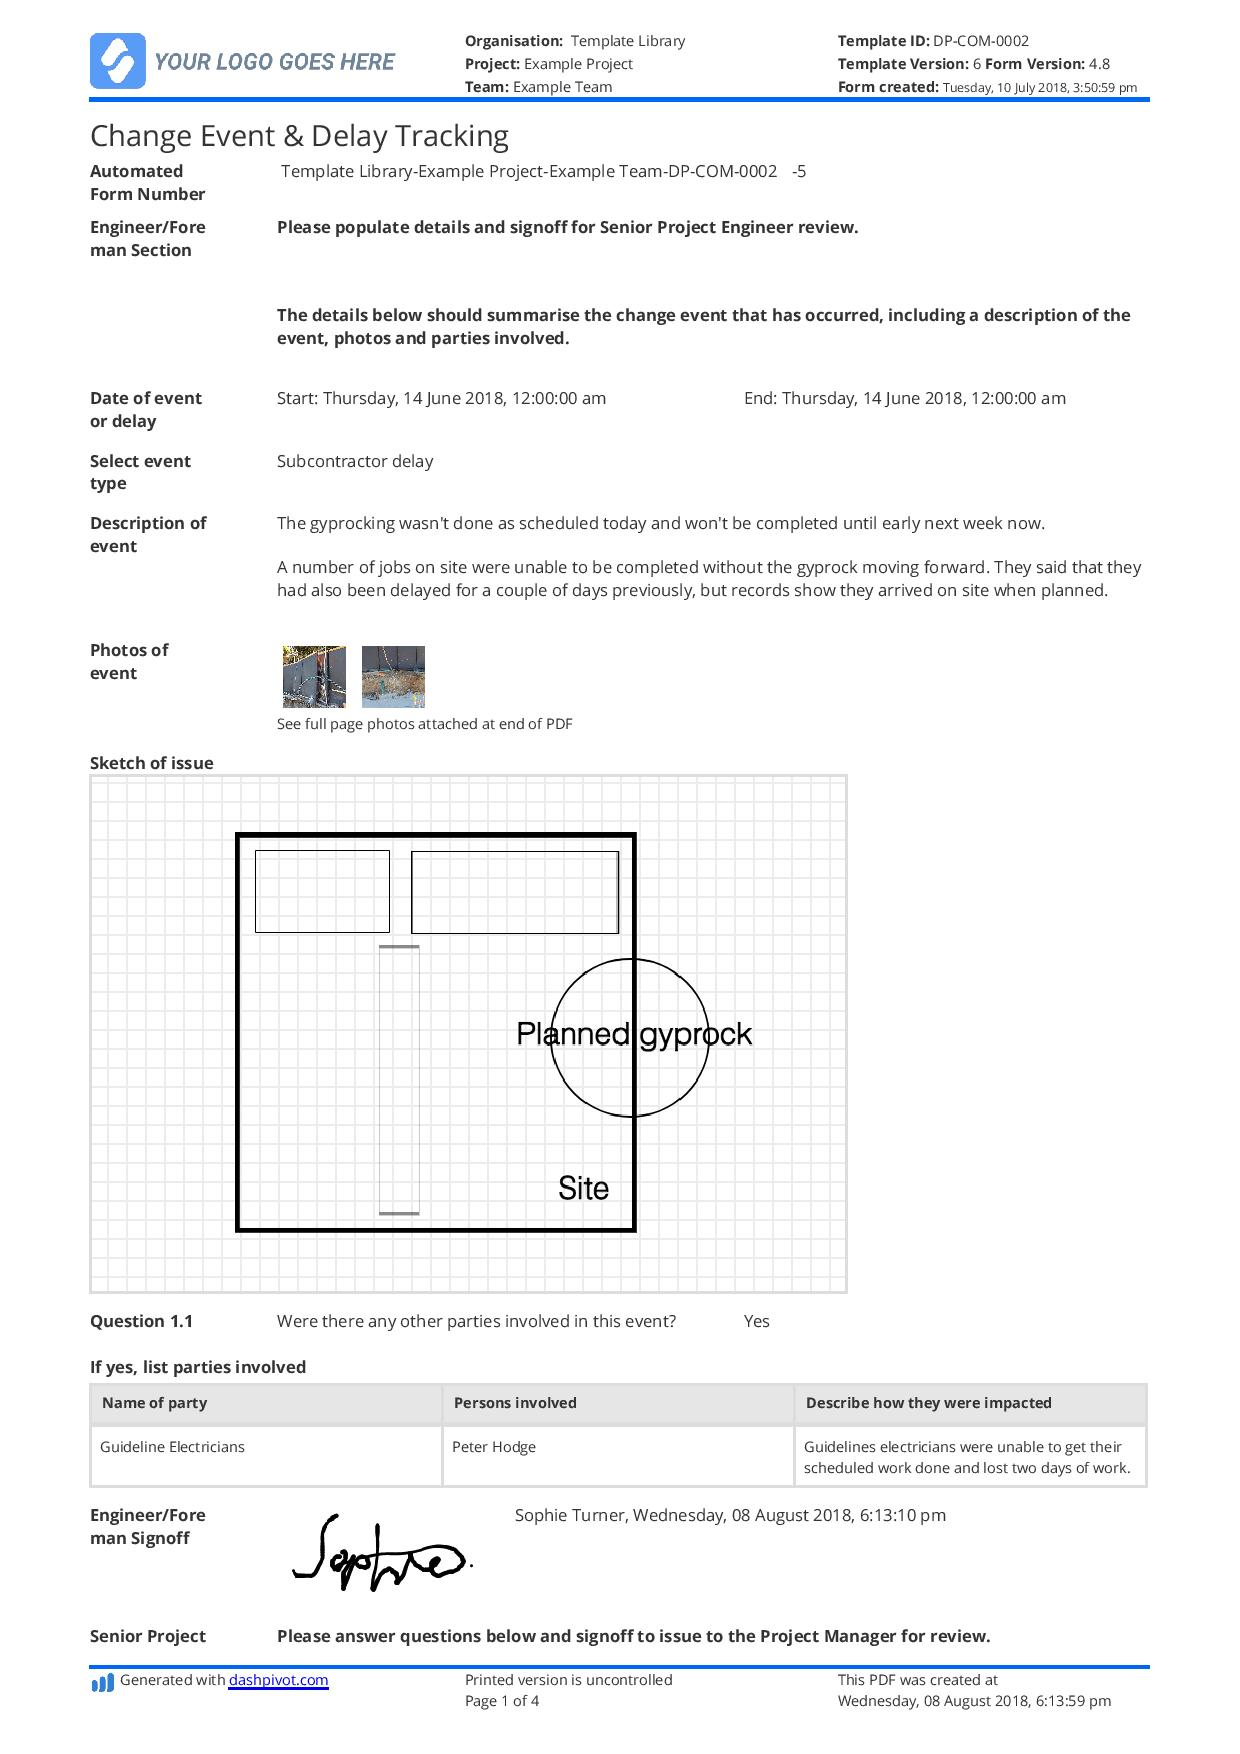 Delay Analysis Report Template: Use This Template For Free Now Throughout Project Analysis Report Template